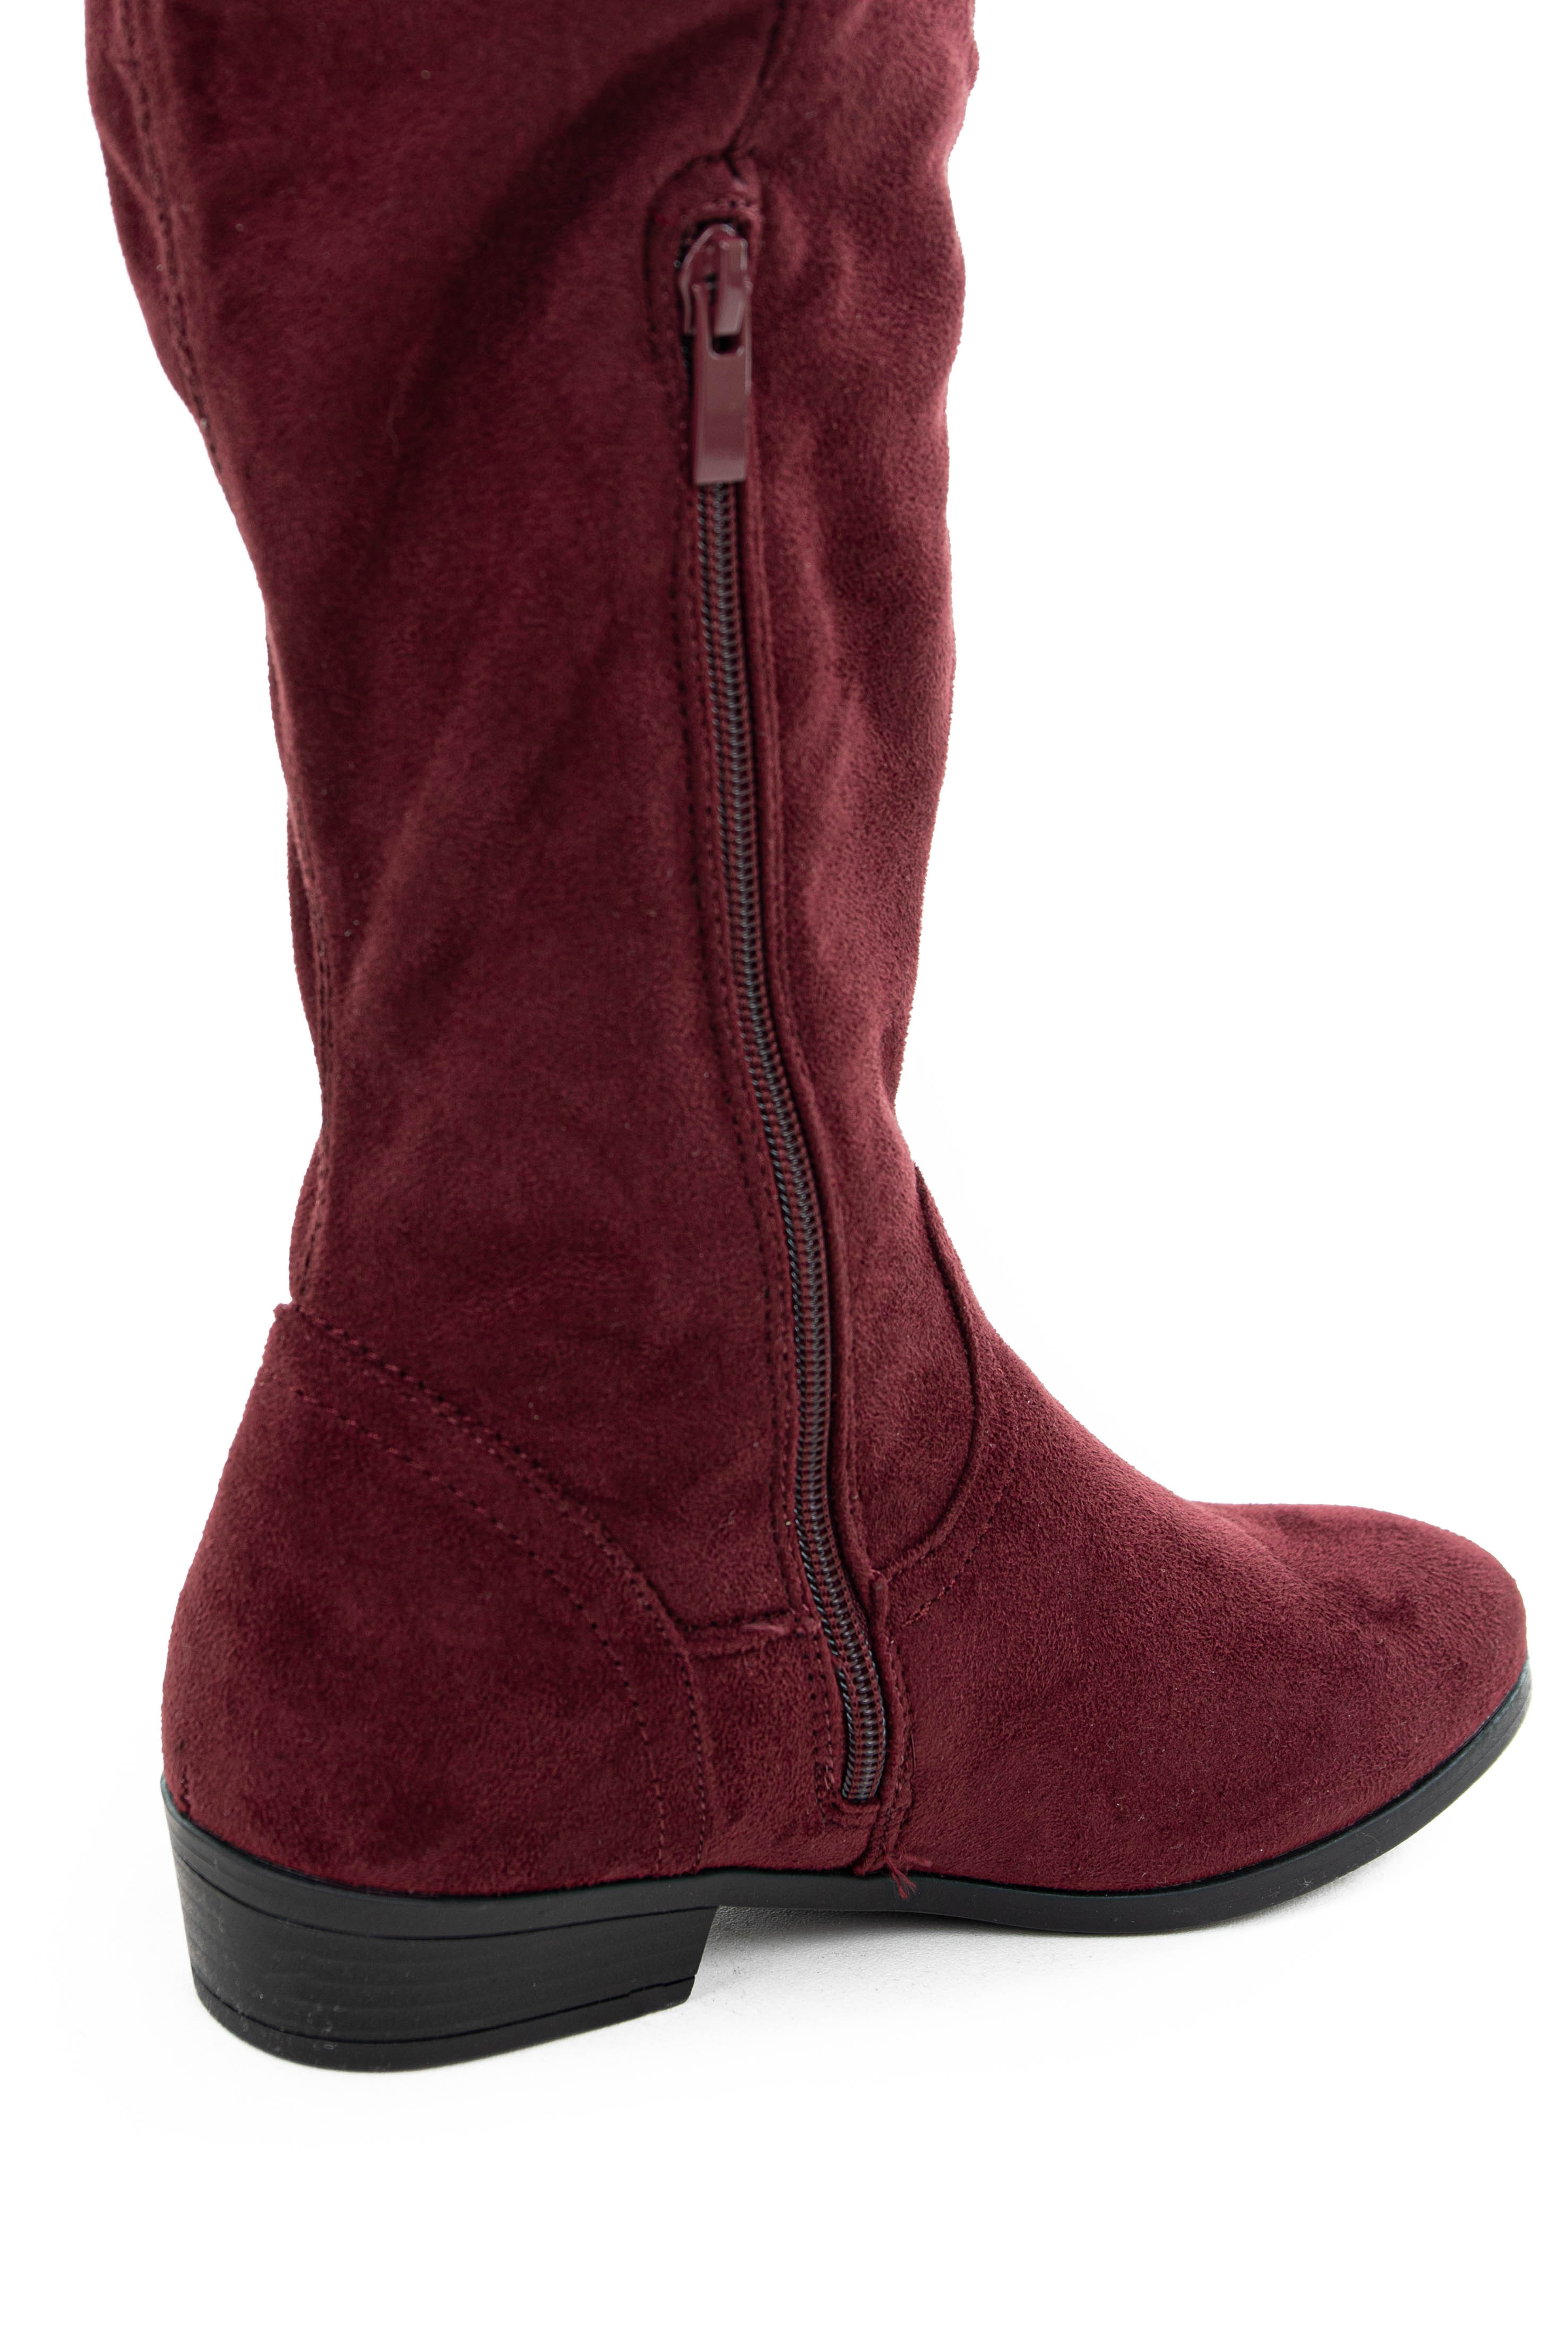 Burgundy Faux Suede Knee High Boots with Small Heel